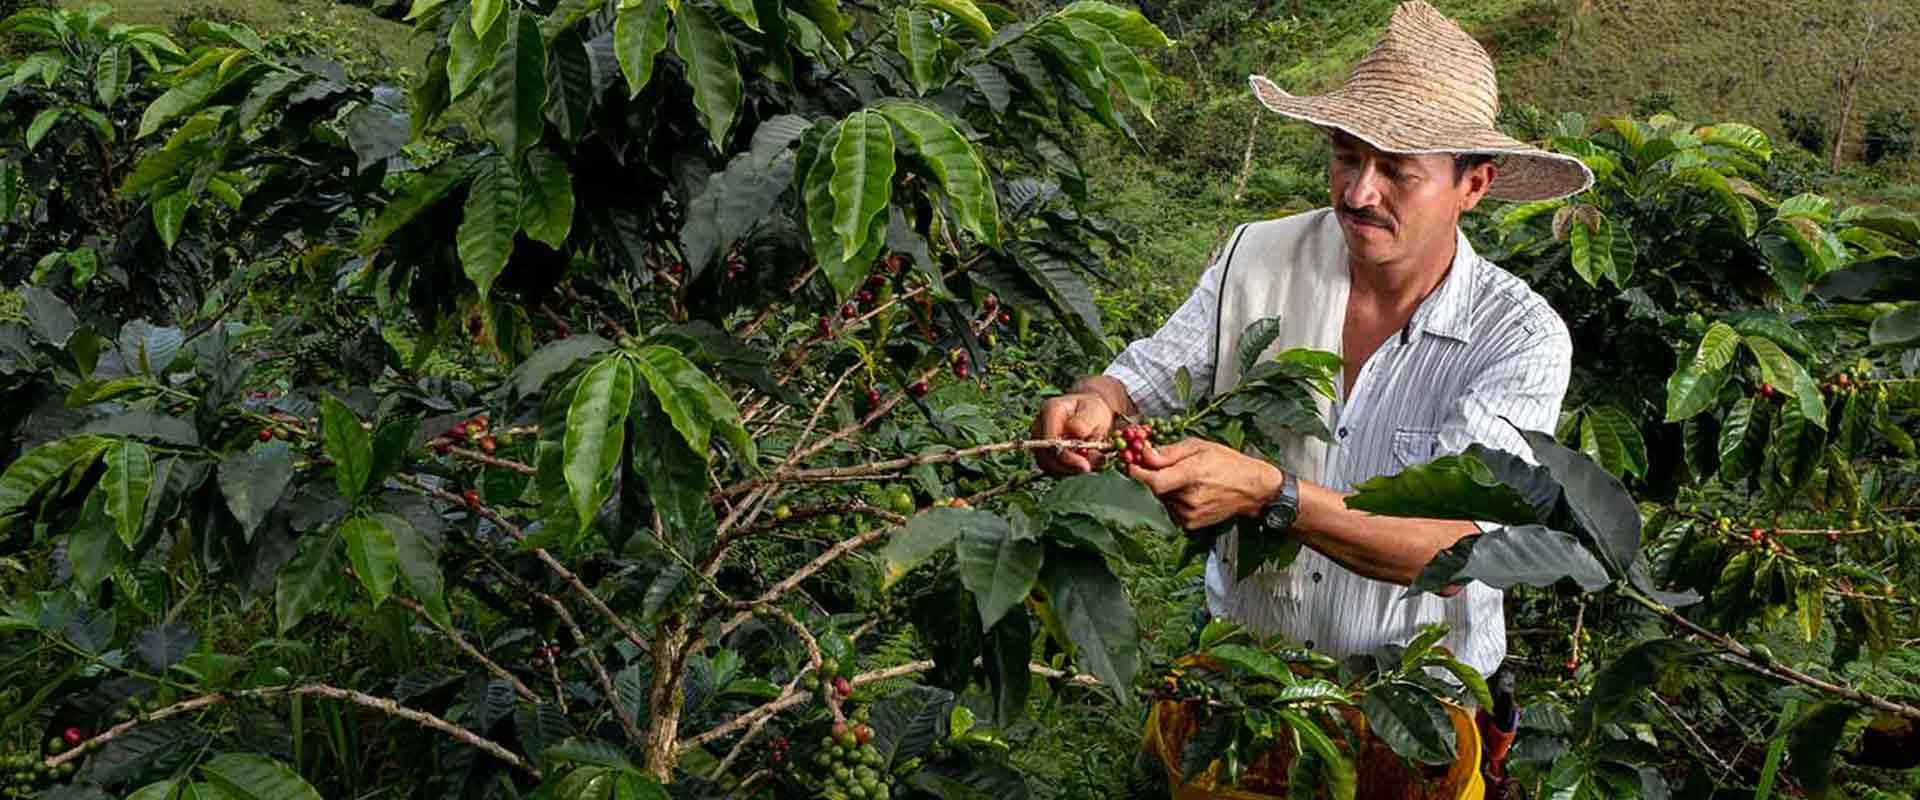 Farmer picking coffee cherries